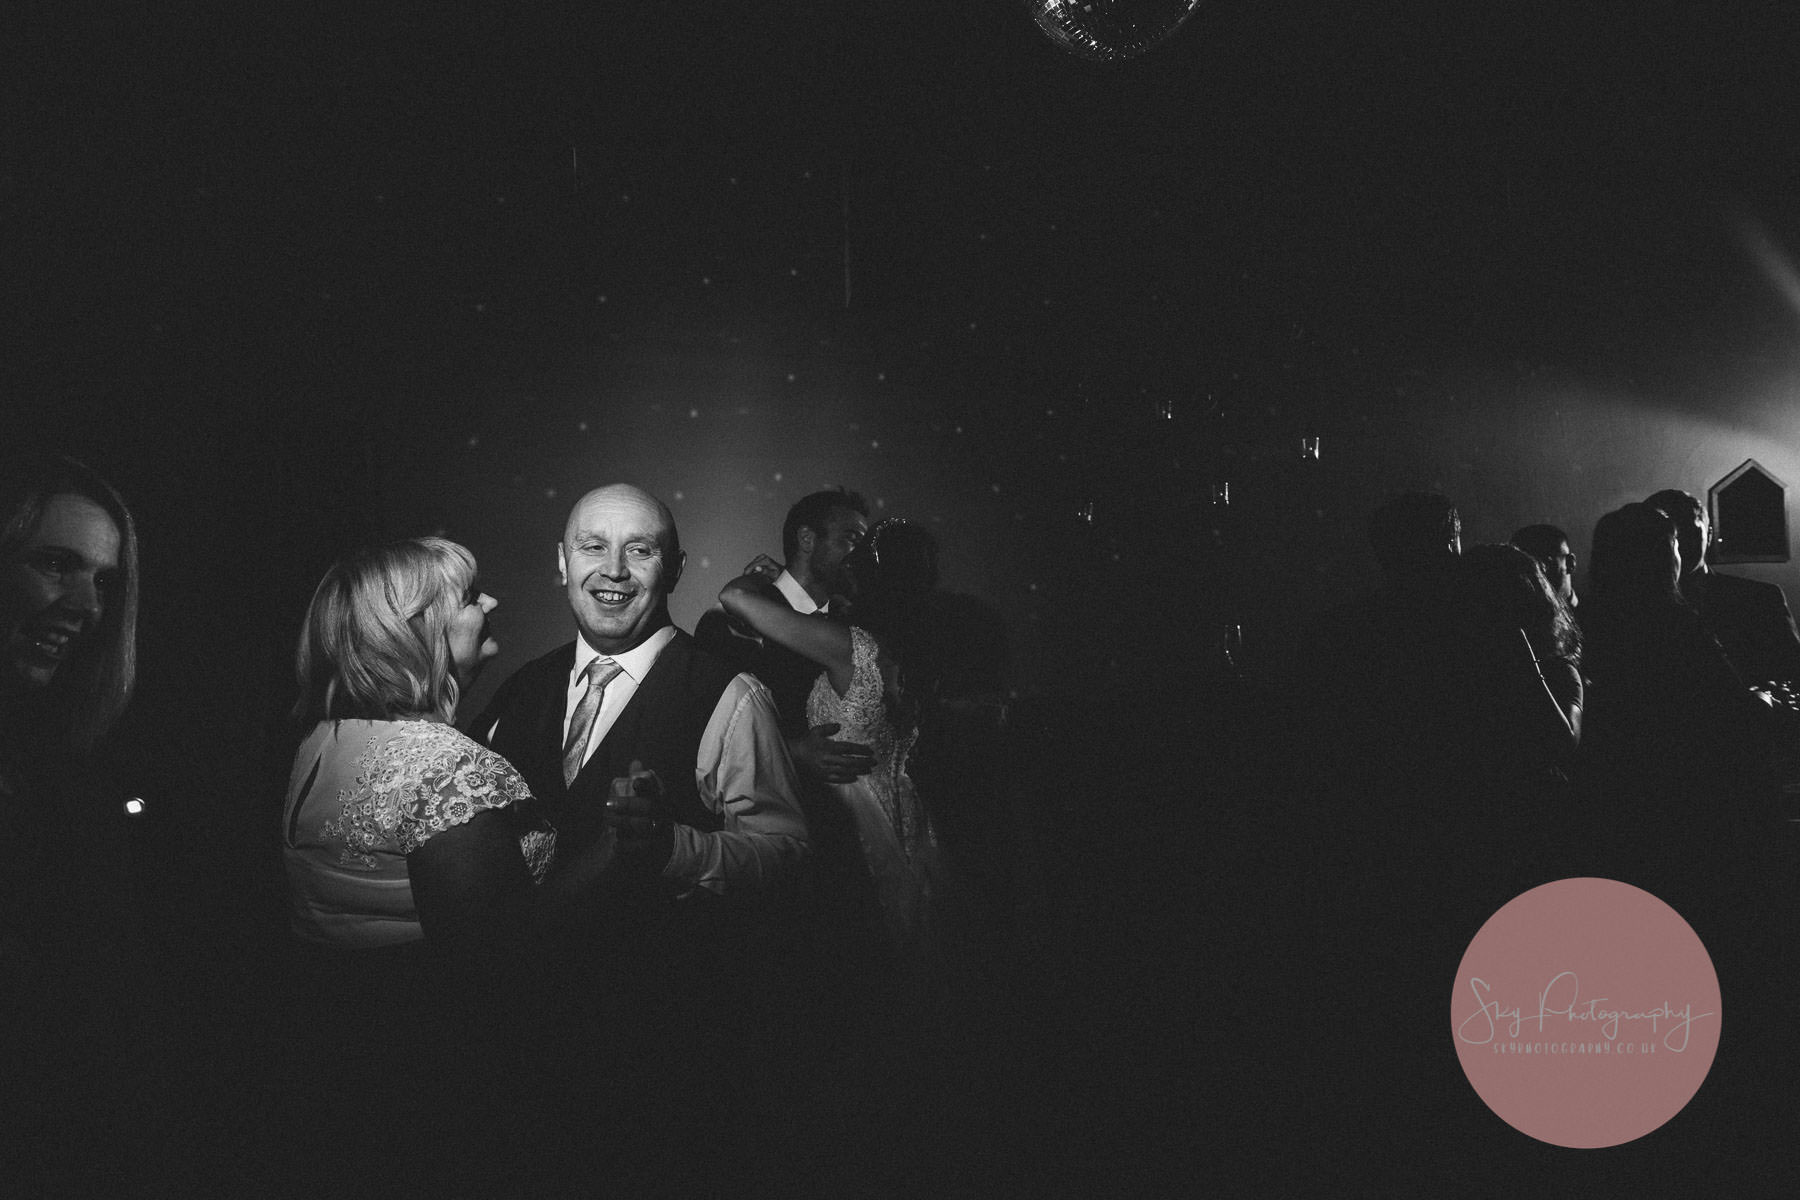 Mum and dad dancing at a wedding